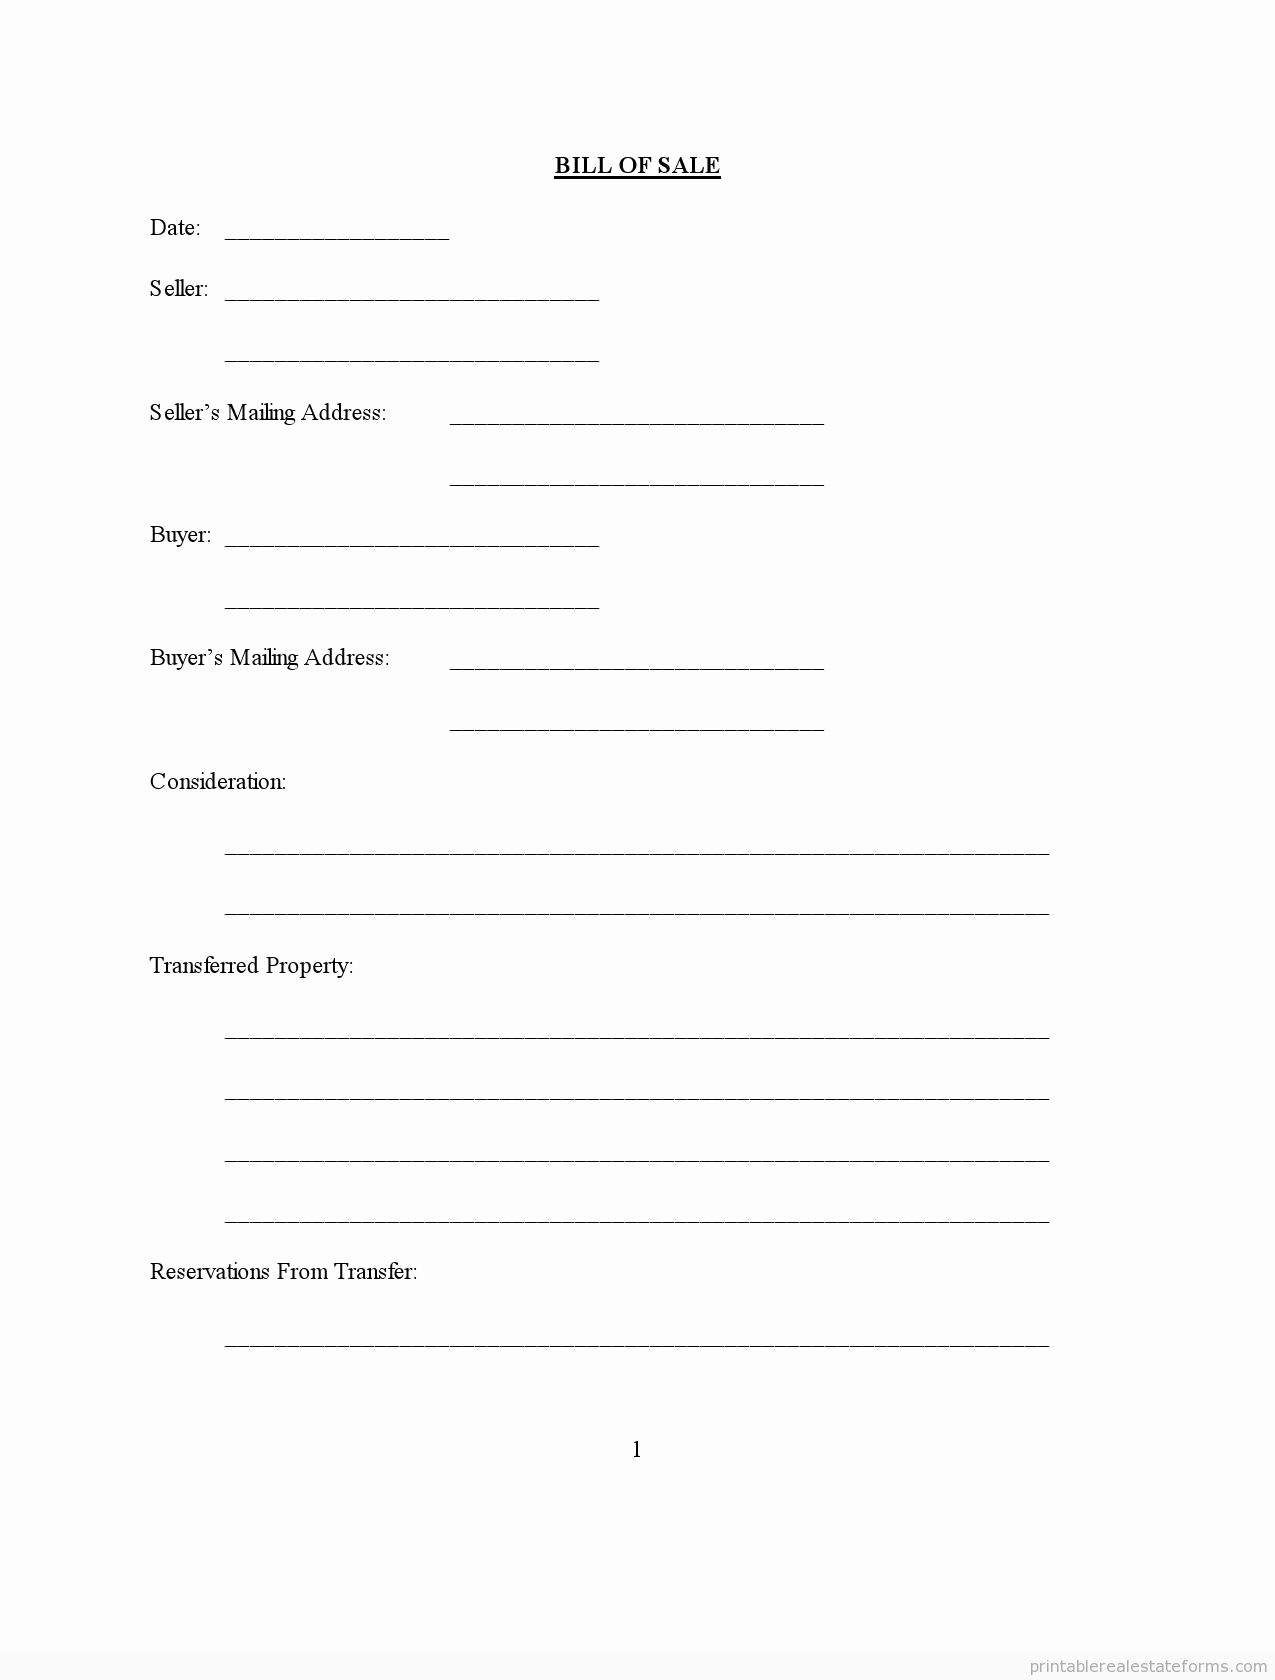 Simple Printable Bill Of Sale Awesome Free Printable Bill Of Sale form Pdf & Word